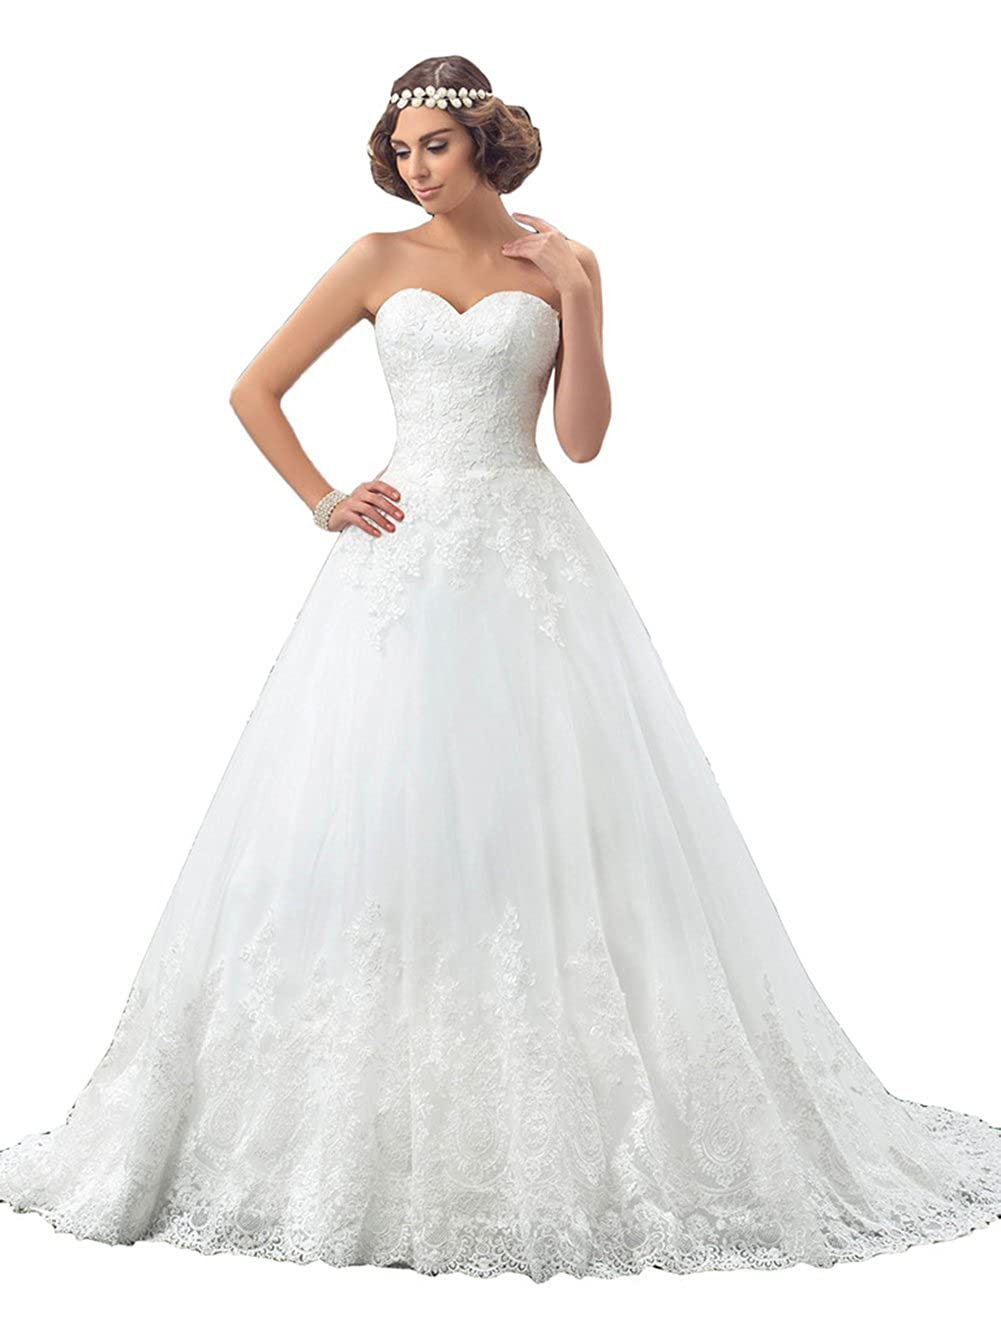 Annxrose Womens Long Strapless Sweetheart Lace Appliques Tulle A